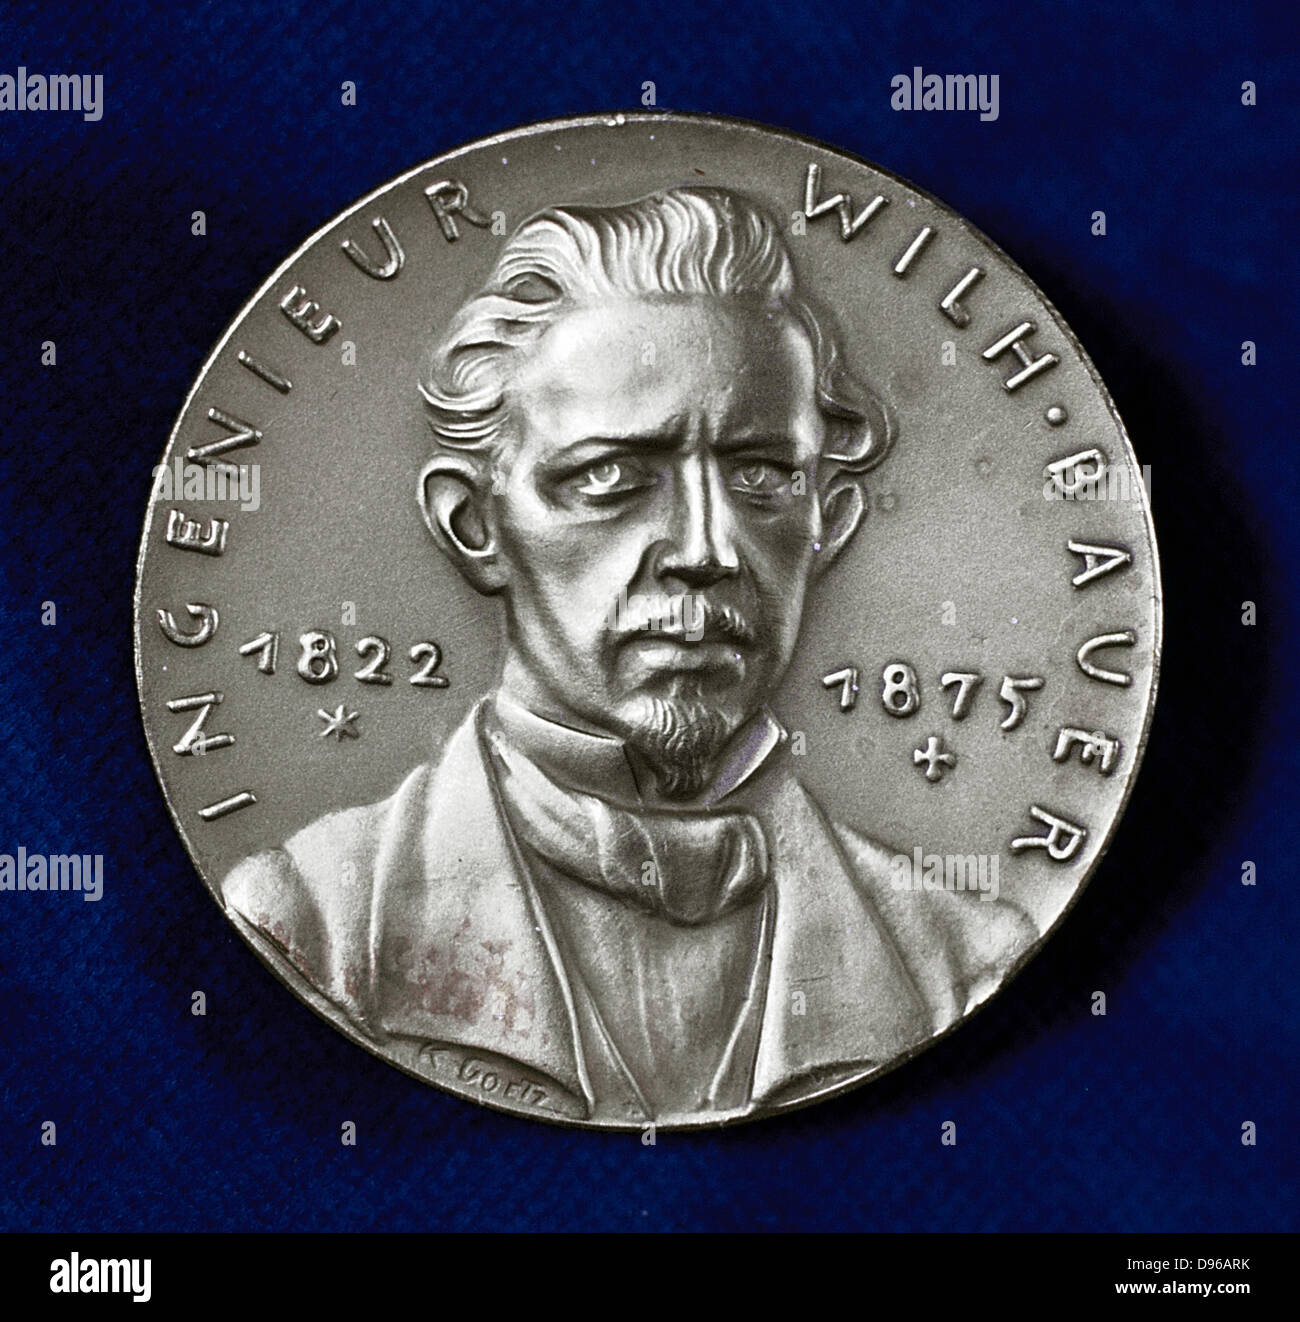 (Sebastian) Wilhelm (Valentin) Bauer (1822-1875) German inventor and pioneer builder of submarines. Obverse of commemorative - Stock Image